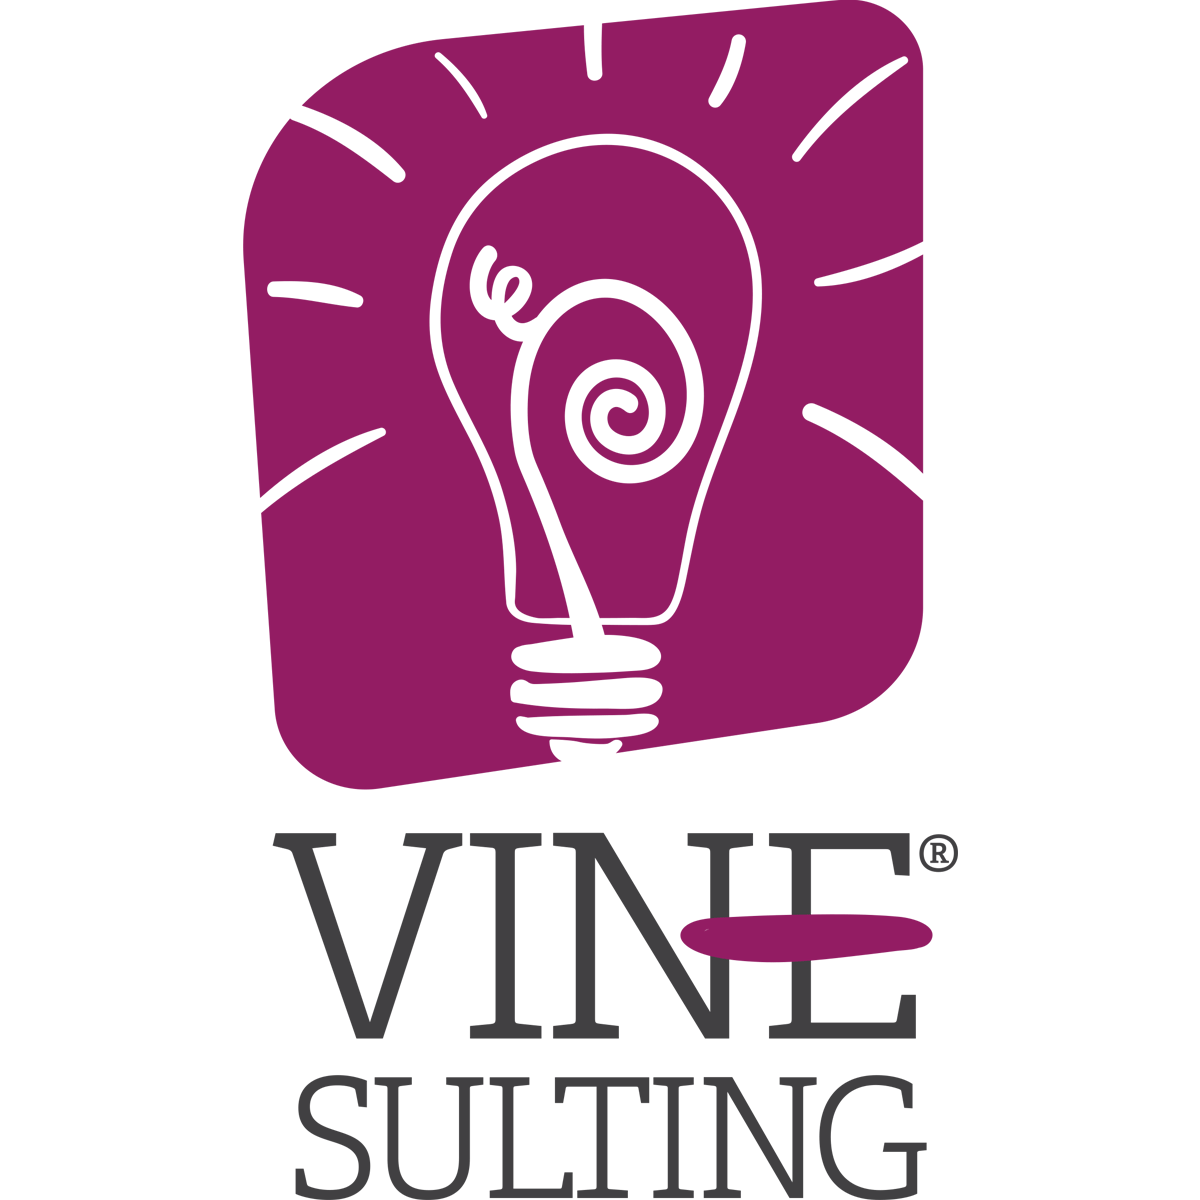 Vinesulting